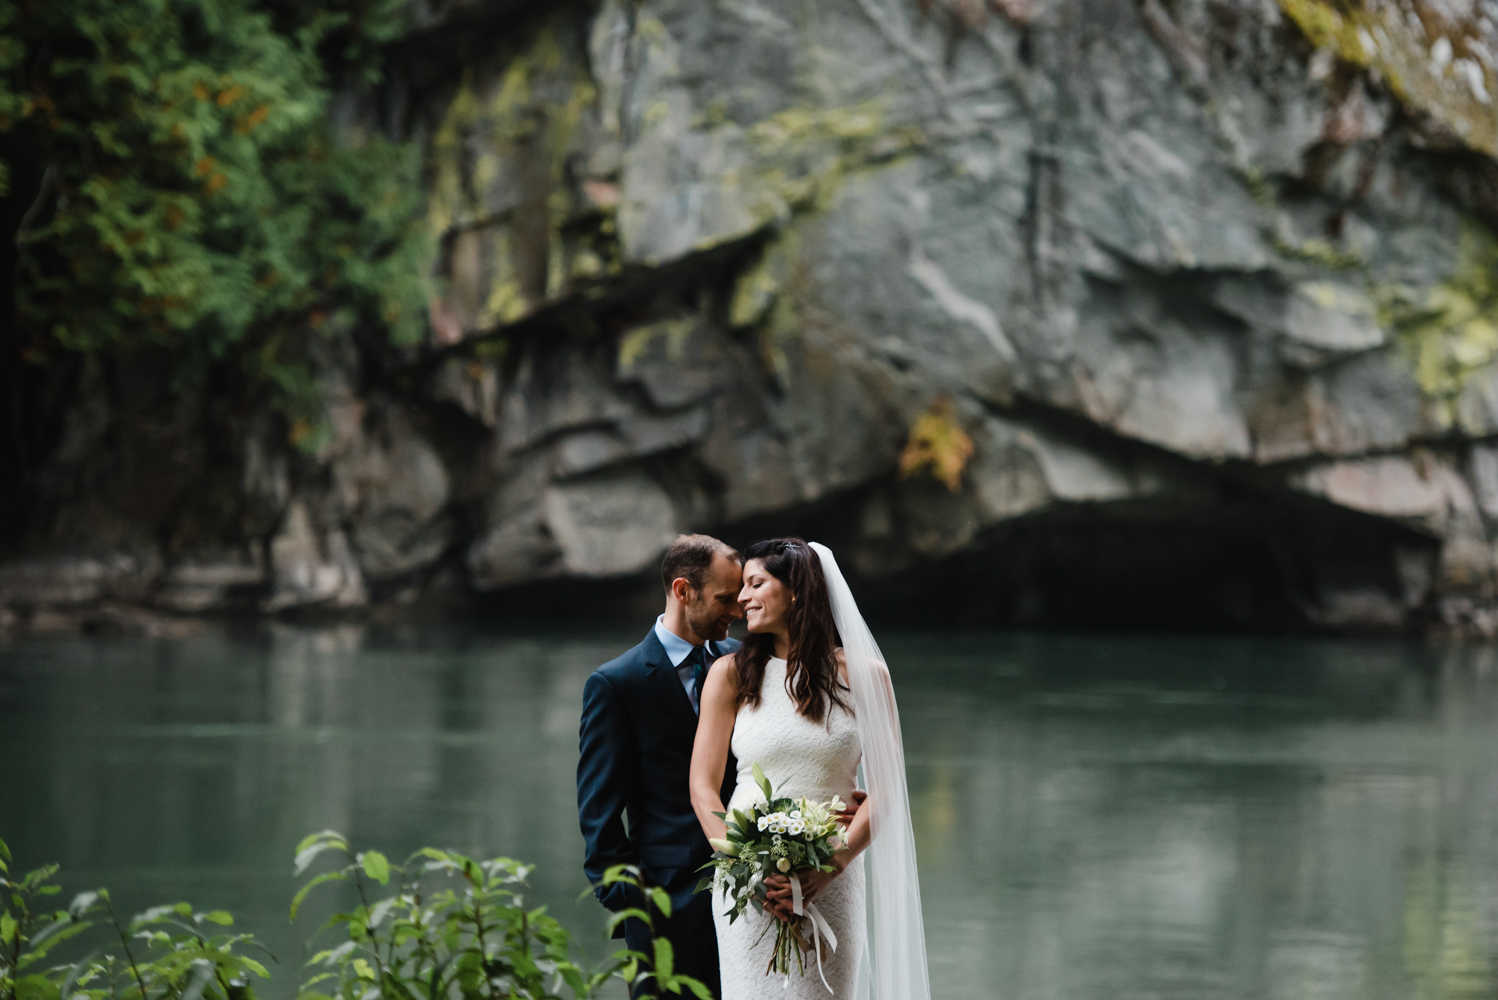 Squamish Wedding Photographer98.jpg